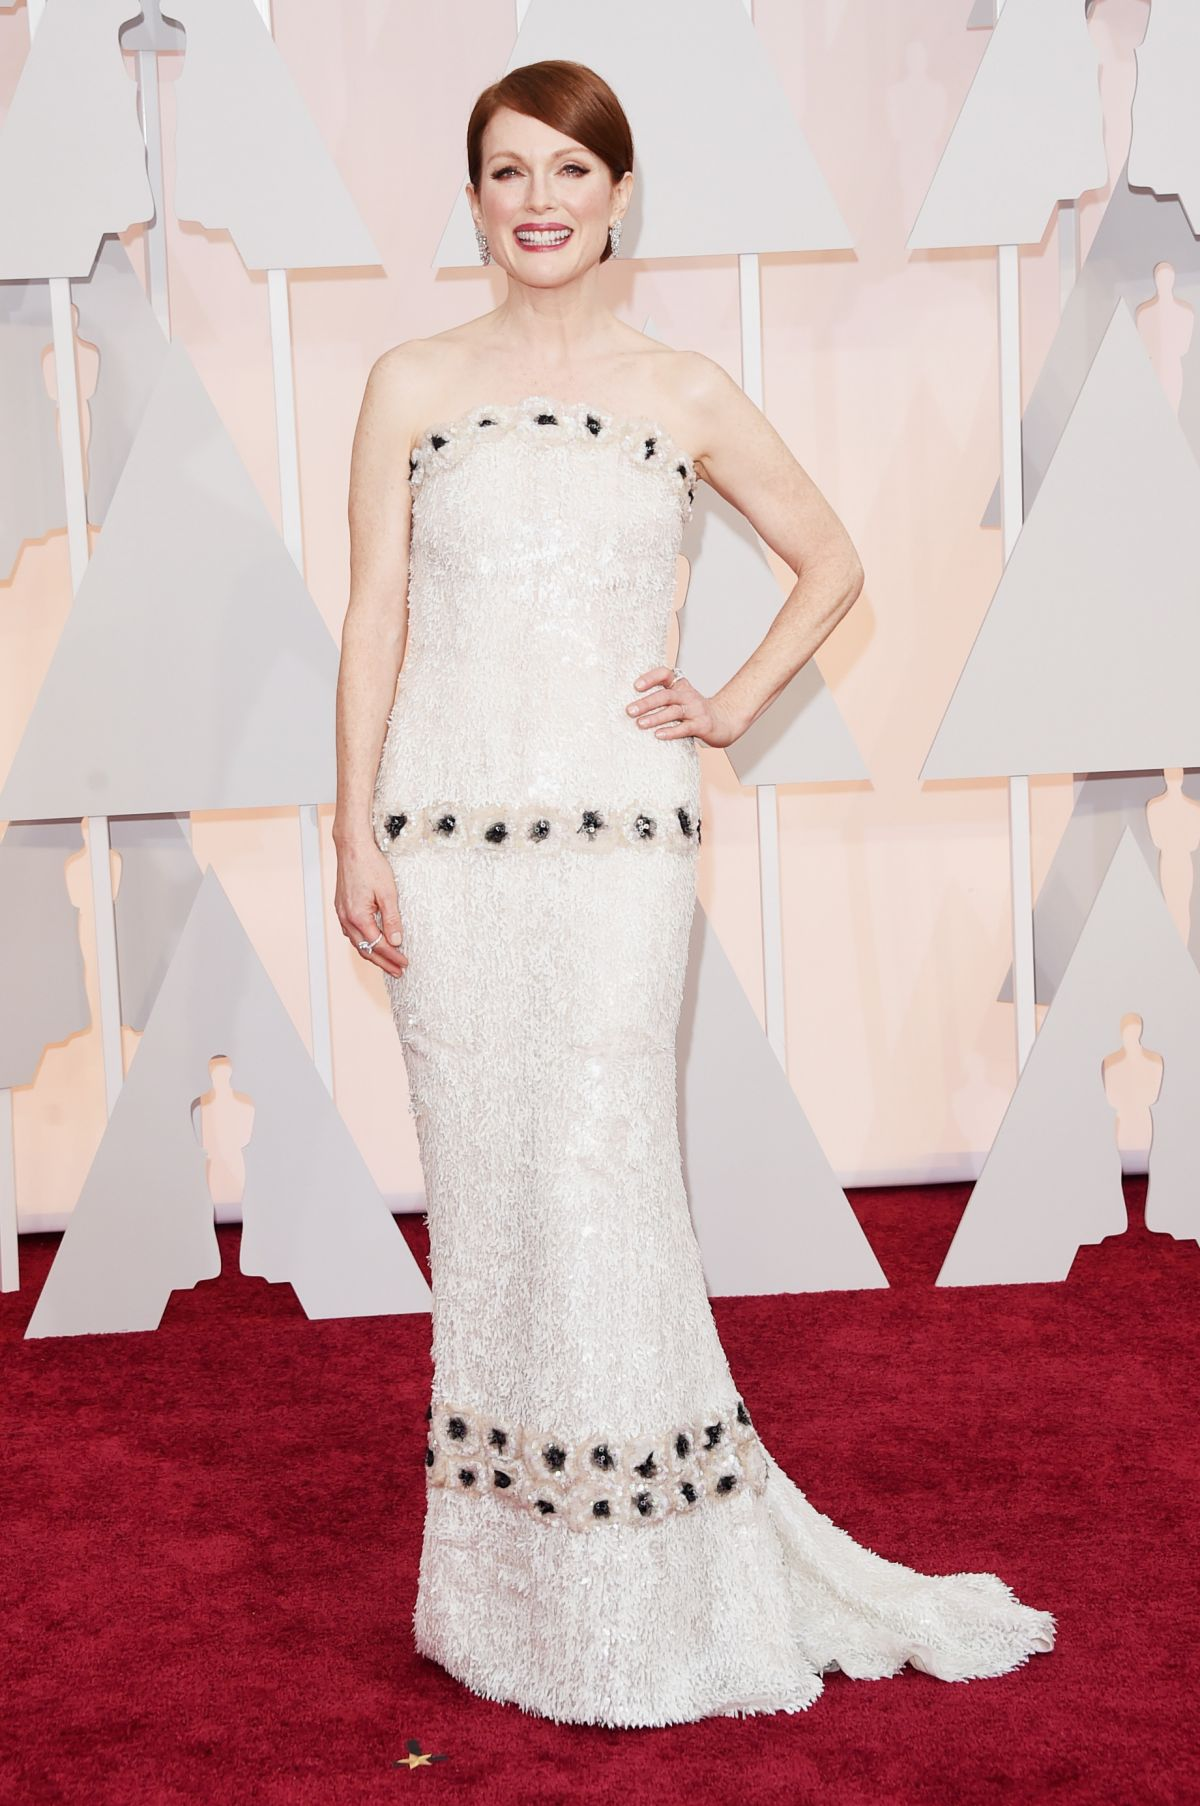 JULIANNE MOORE at 87th Annual Academy Awards at the Dolby Theatre in Hollywood